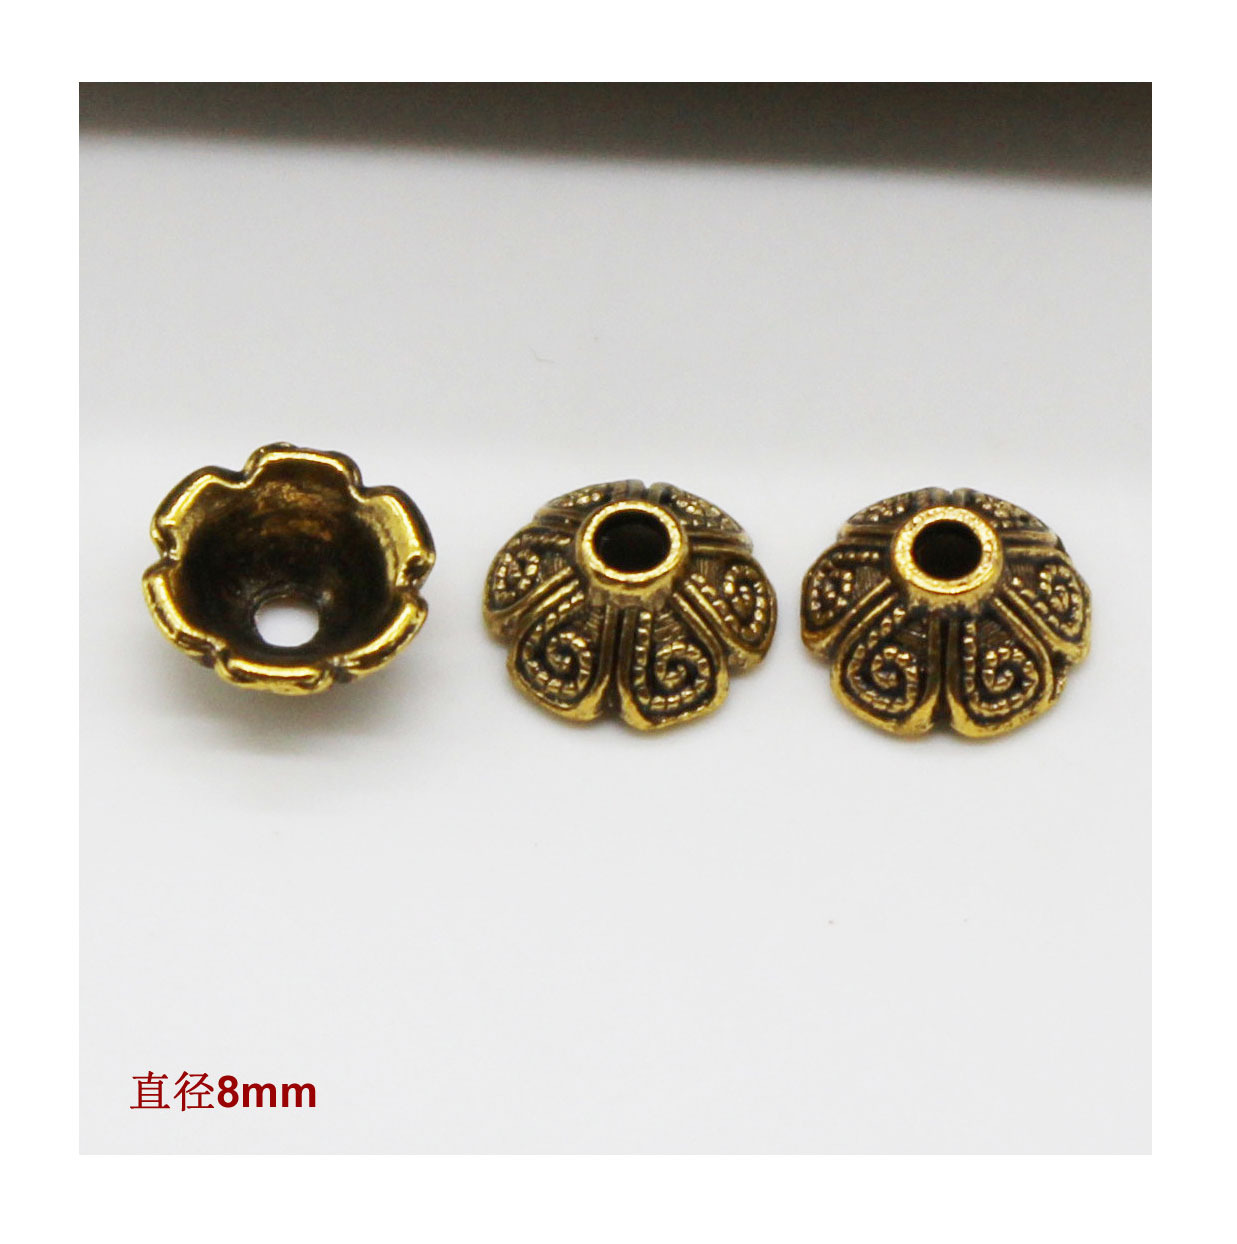 Antique Alloy Beads for DIY Accessories